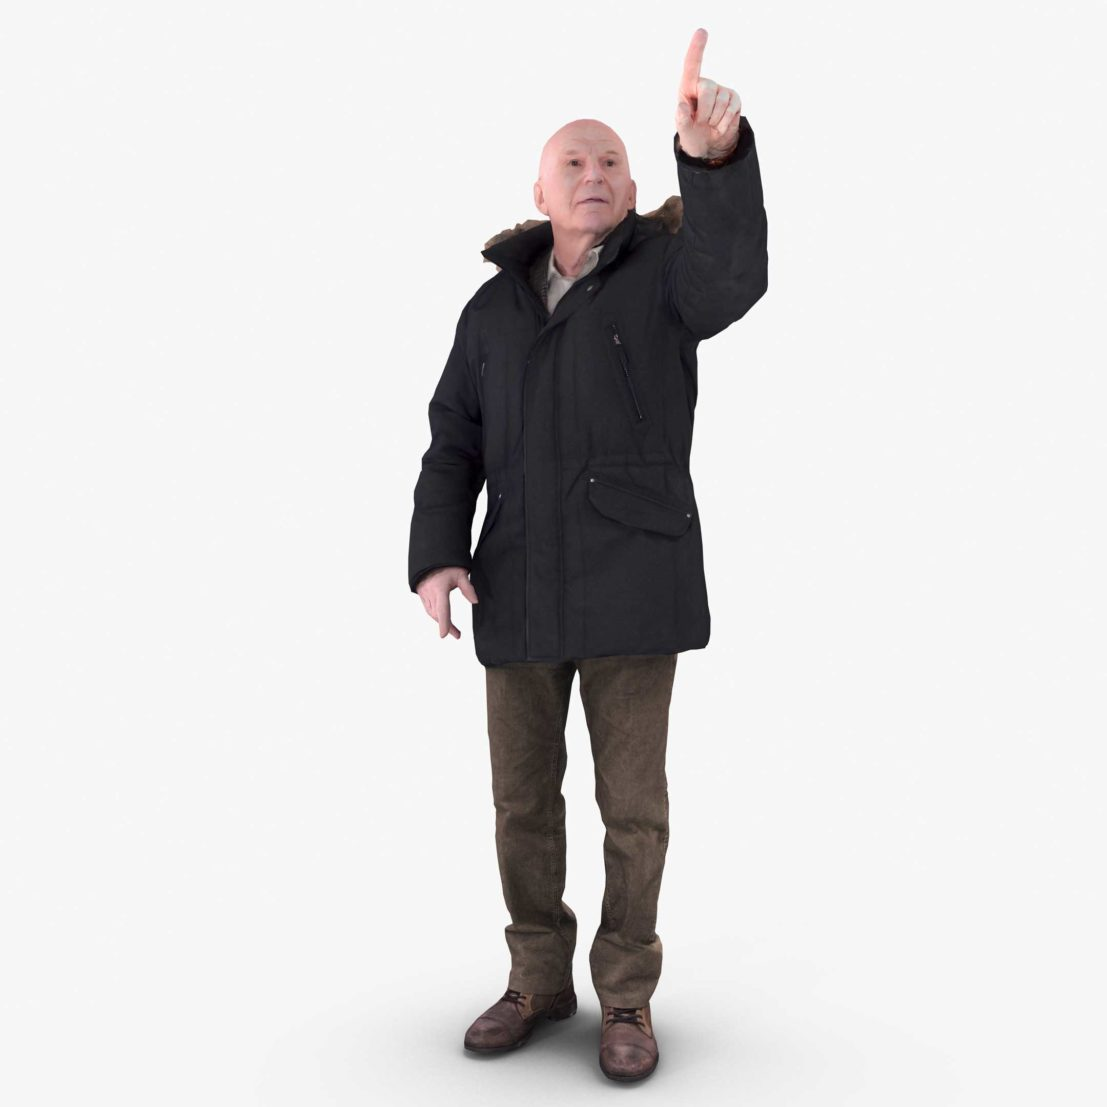 Oldman Pointing 3D Model | 3DTree Scanning Studio